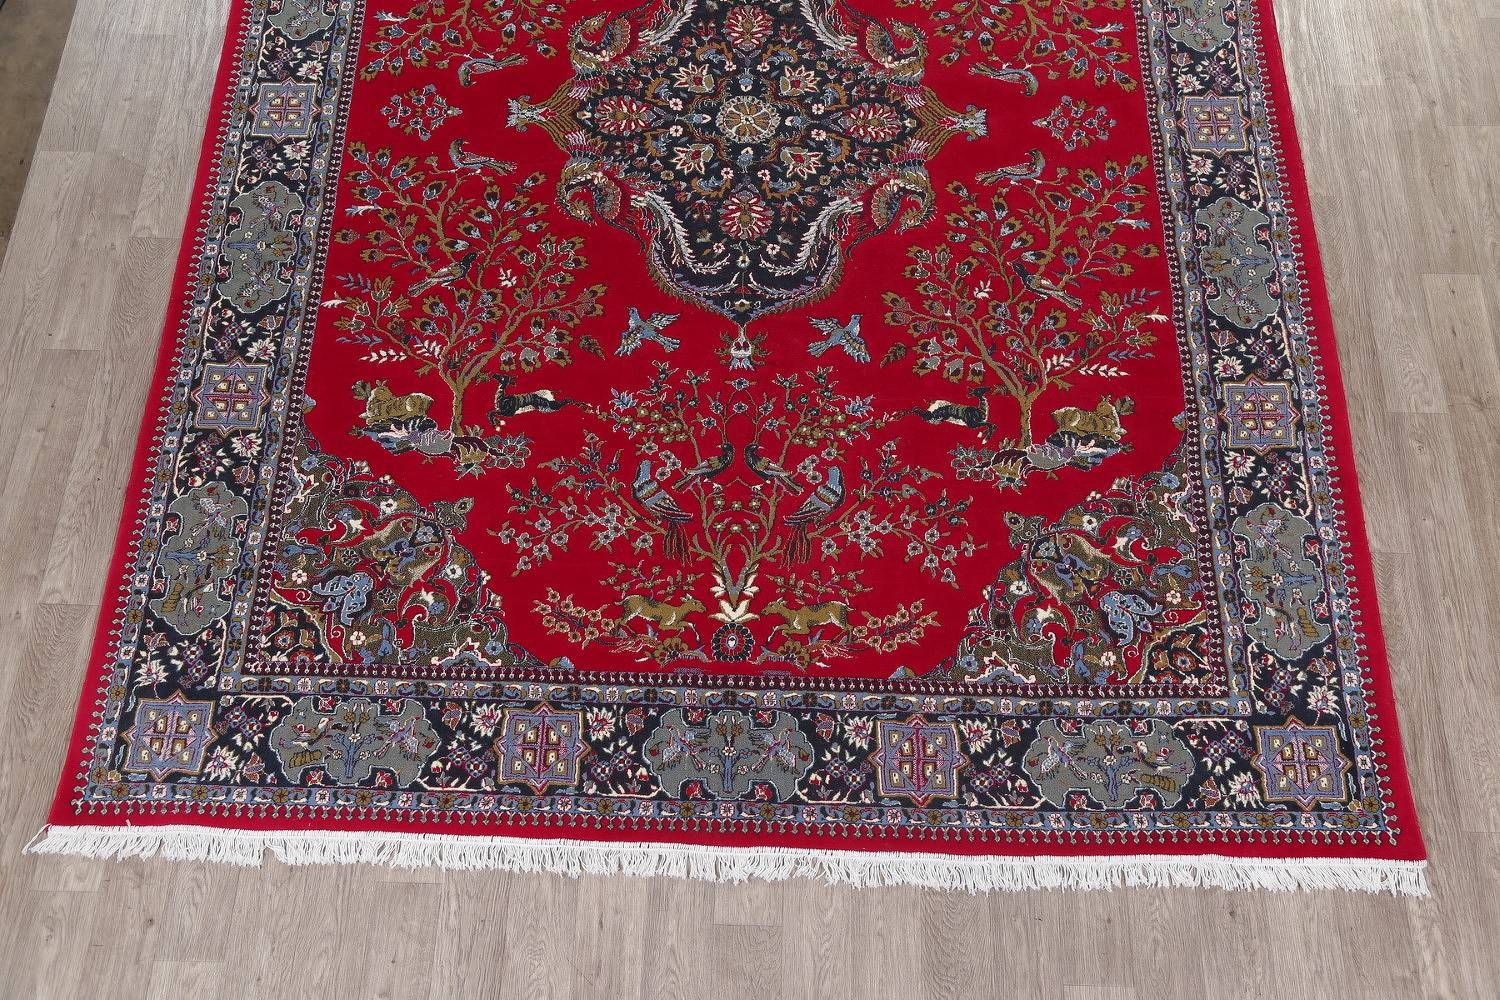 Animal Pictorial Red Najafabad Isfahan Turkish Oriental Area Rug Wool 10x13